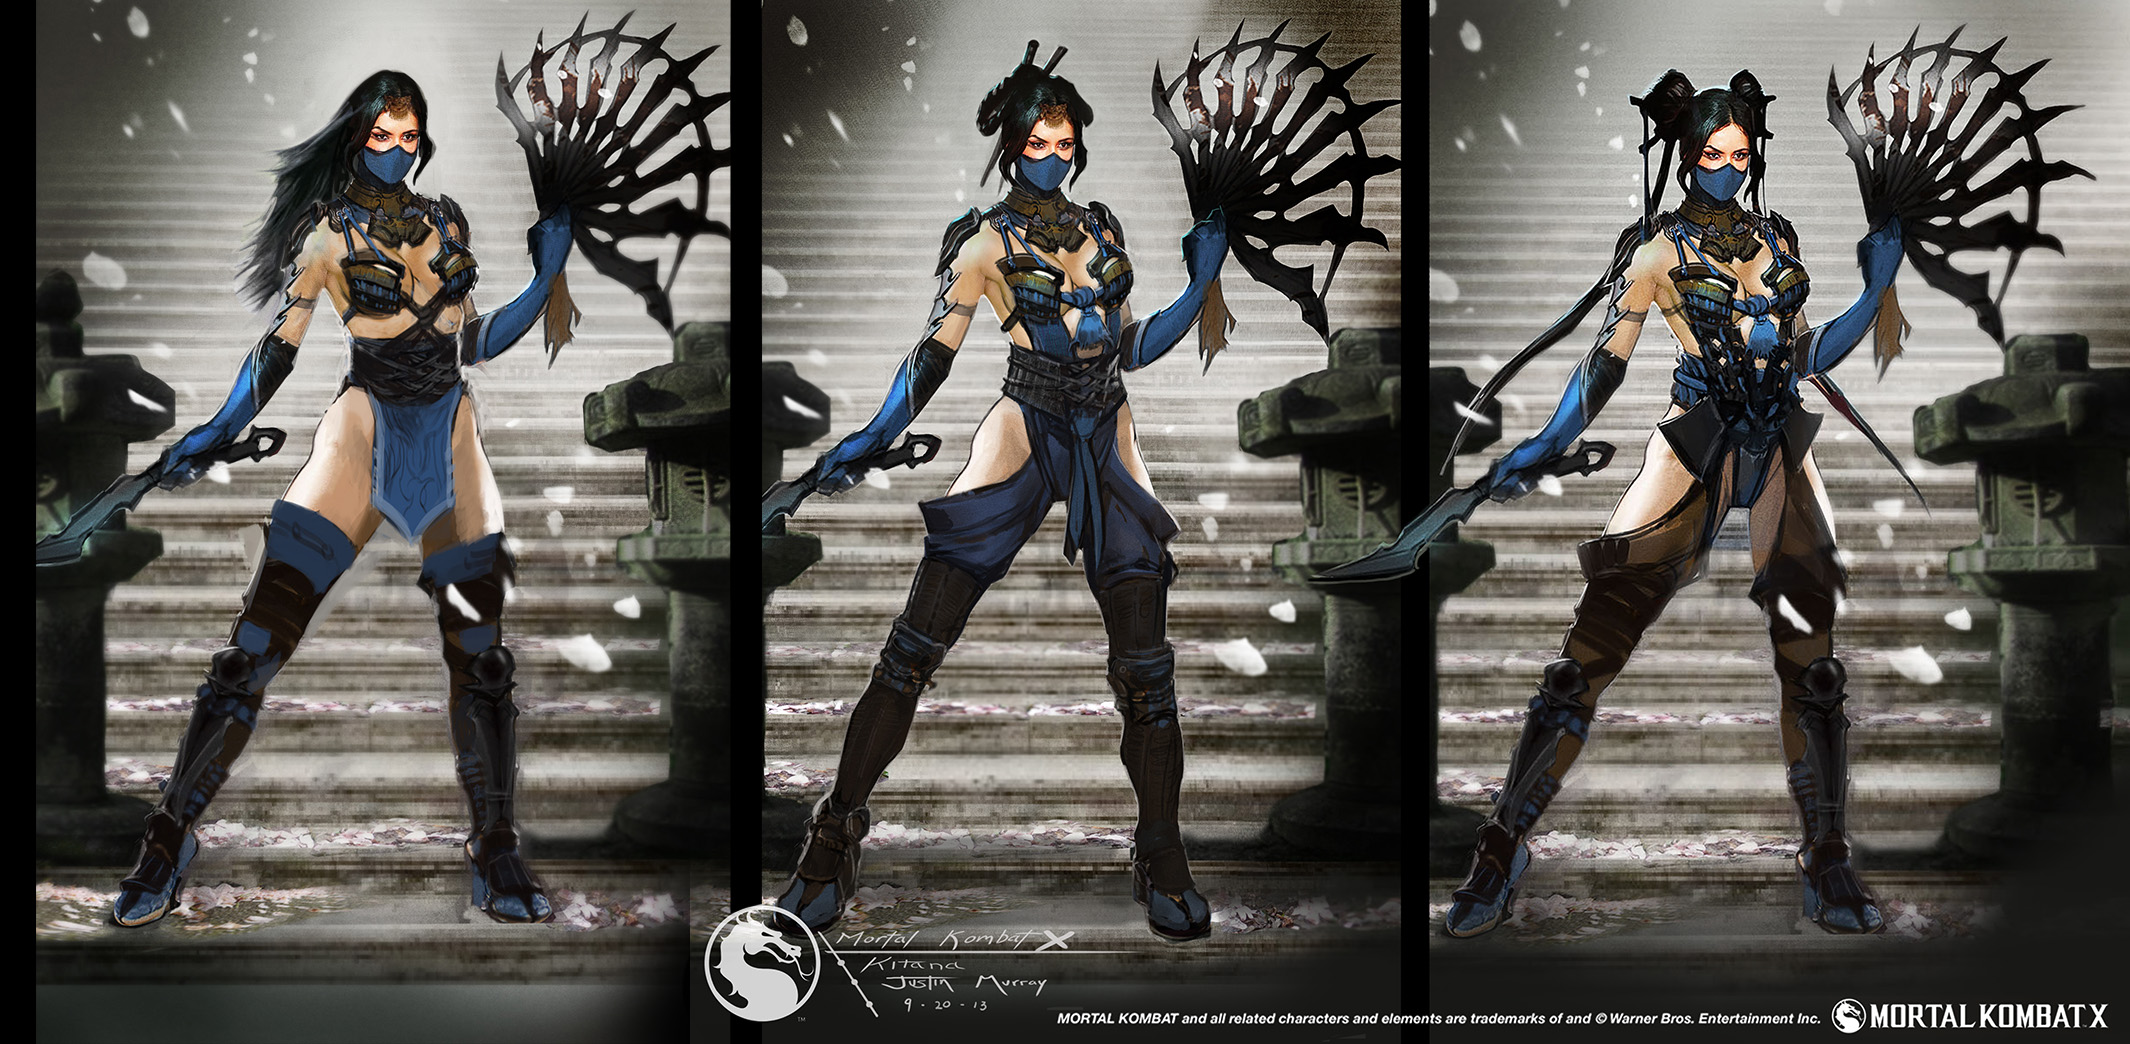 Exclusive 'Mortal Kombat X' Concept Art by Justin Murray